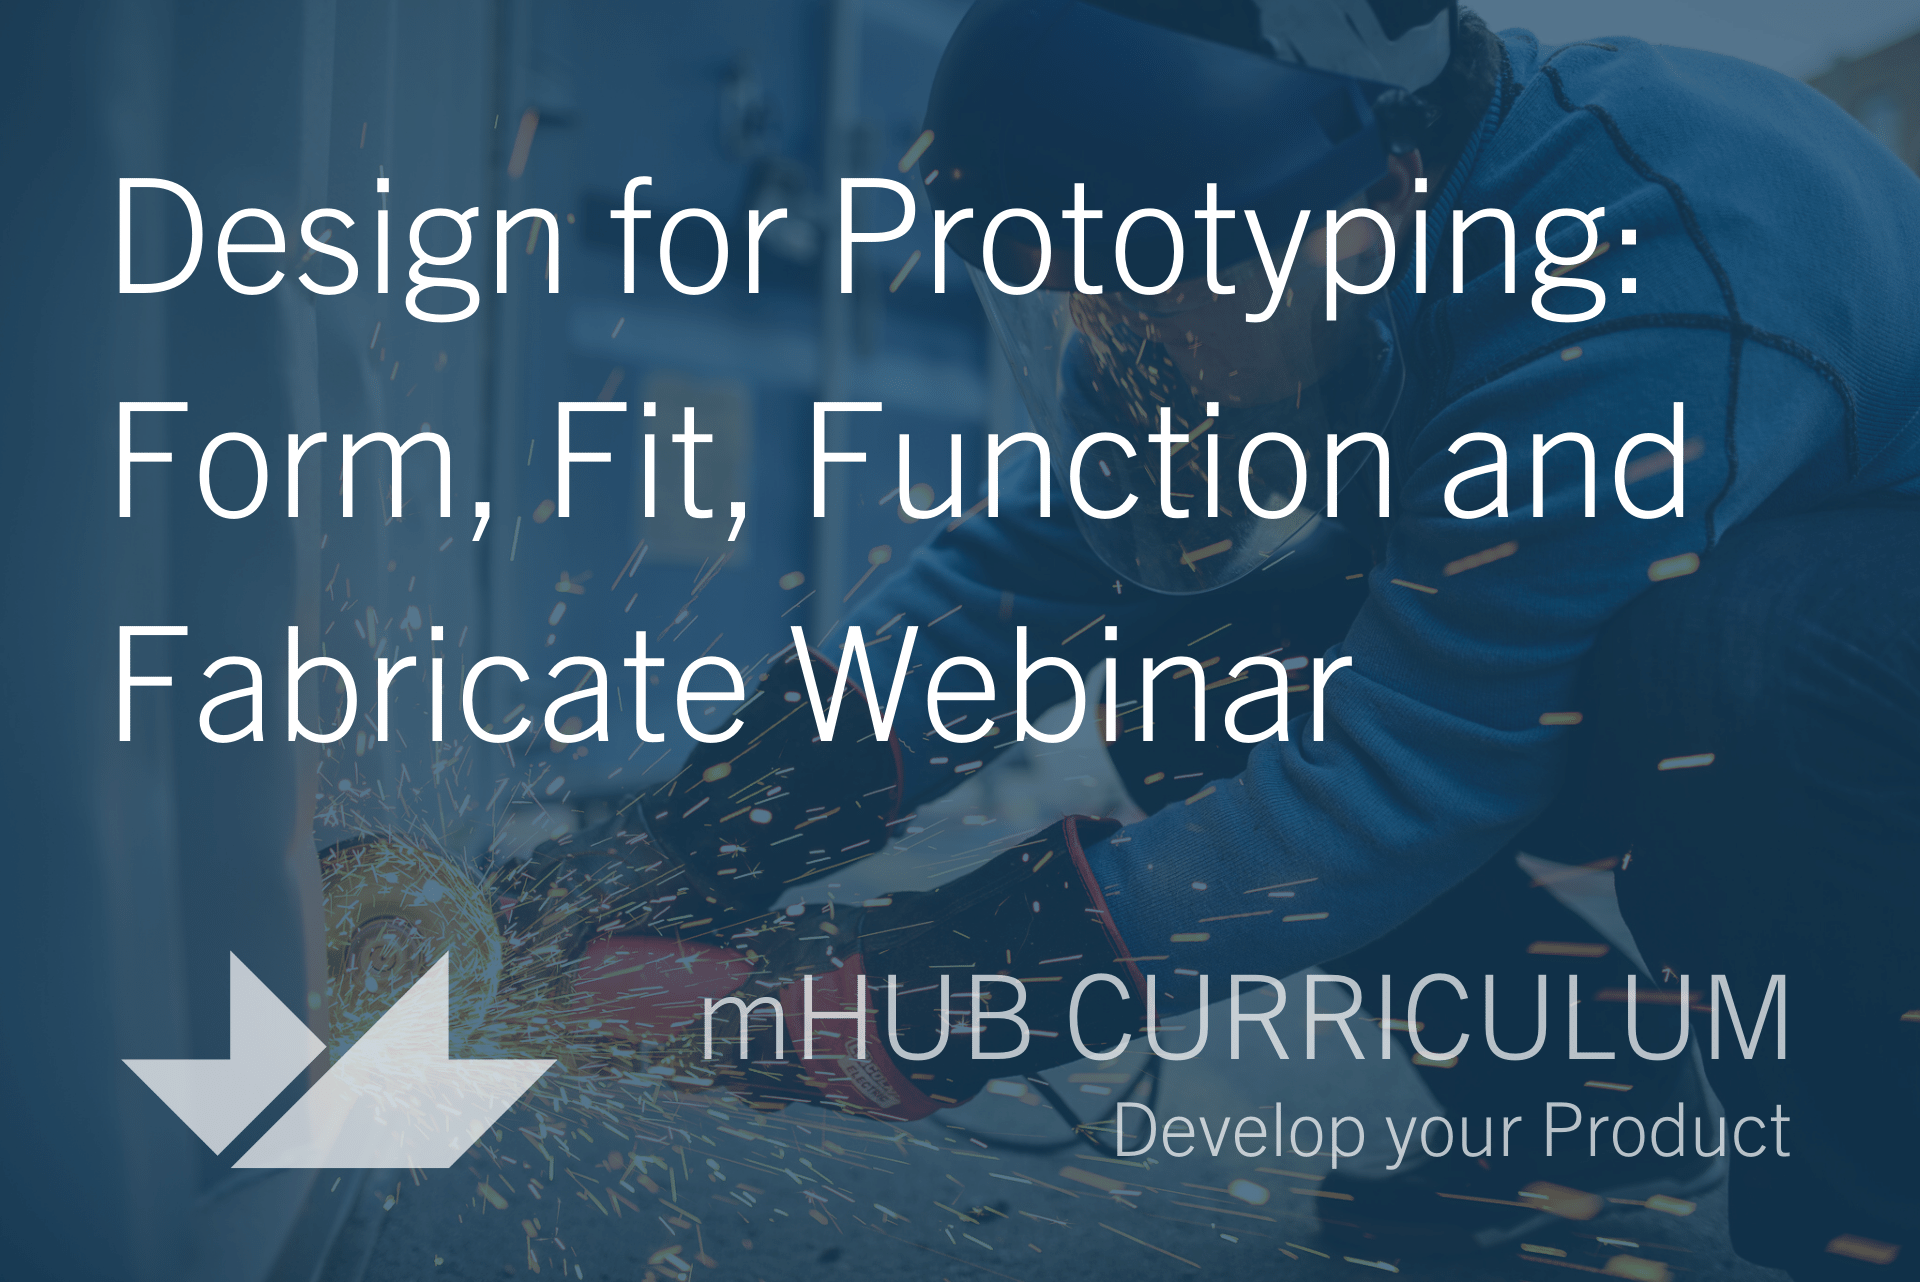 Design for Prototyping: Form, Fit, Function and Fabricate Webinar